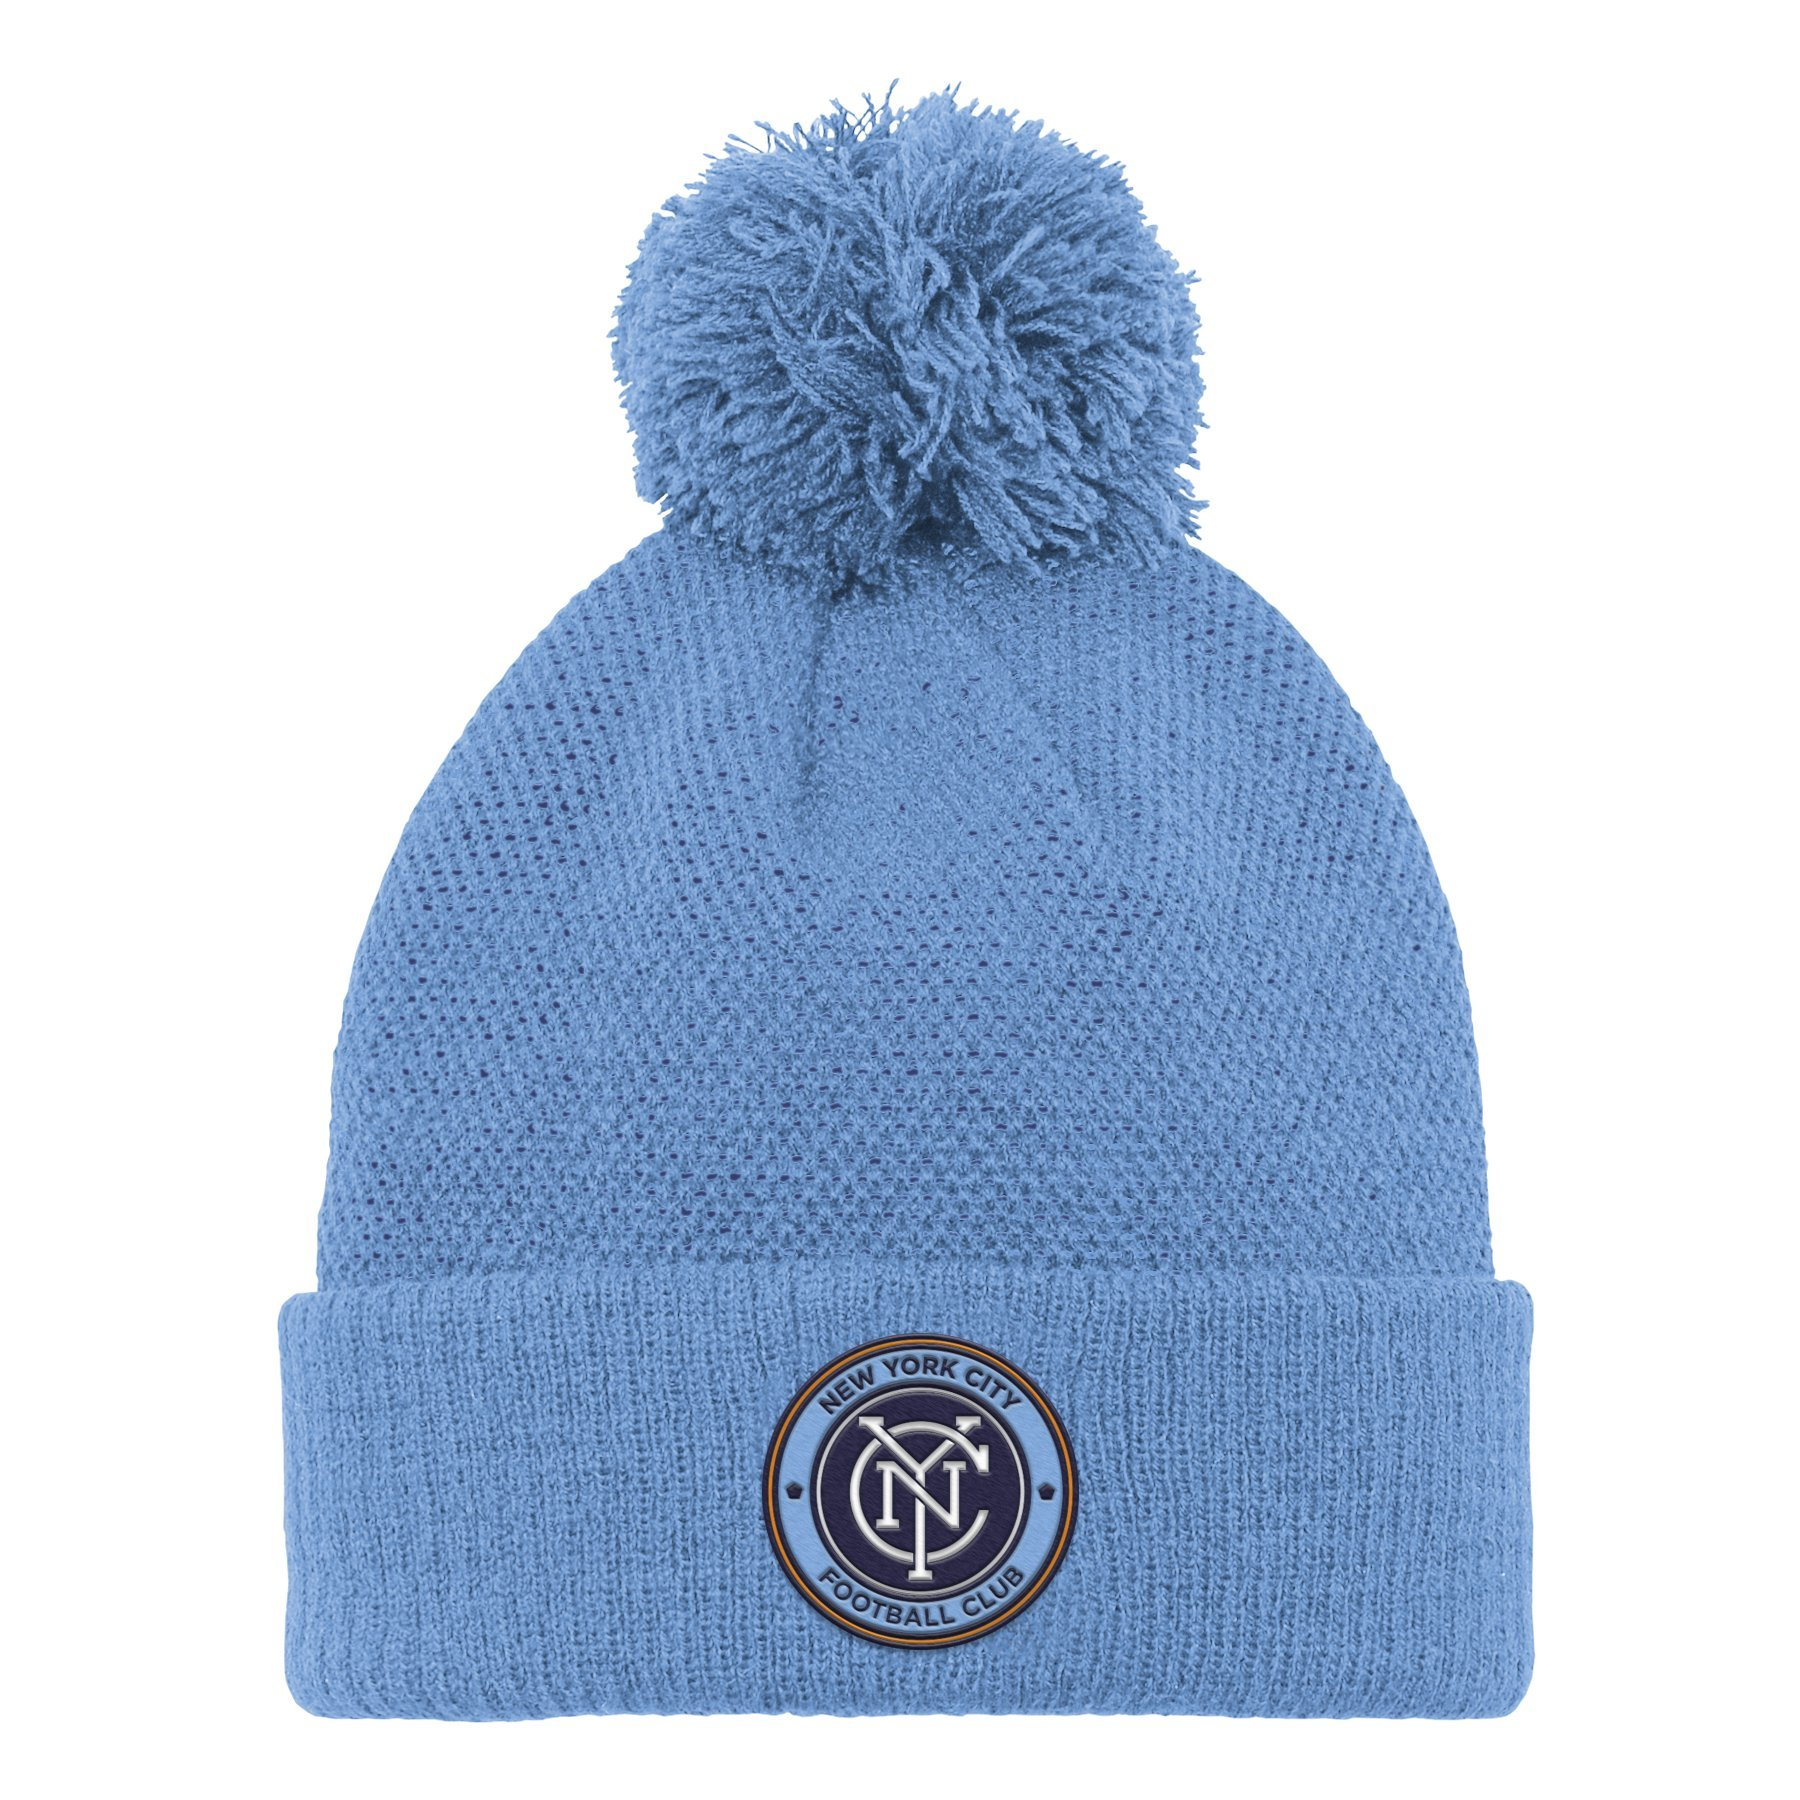 MLS NYCFC R S8FMS Youth Boys Cuffed Knit Hat with Pom, One Size (8), Bahia Blue